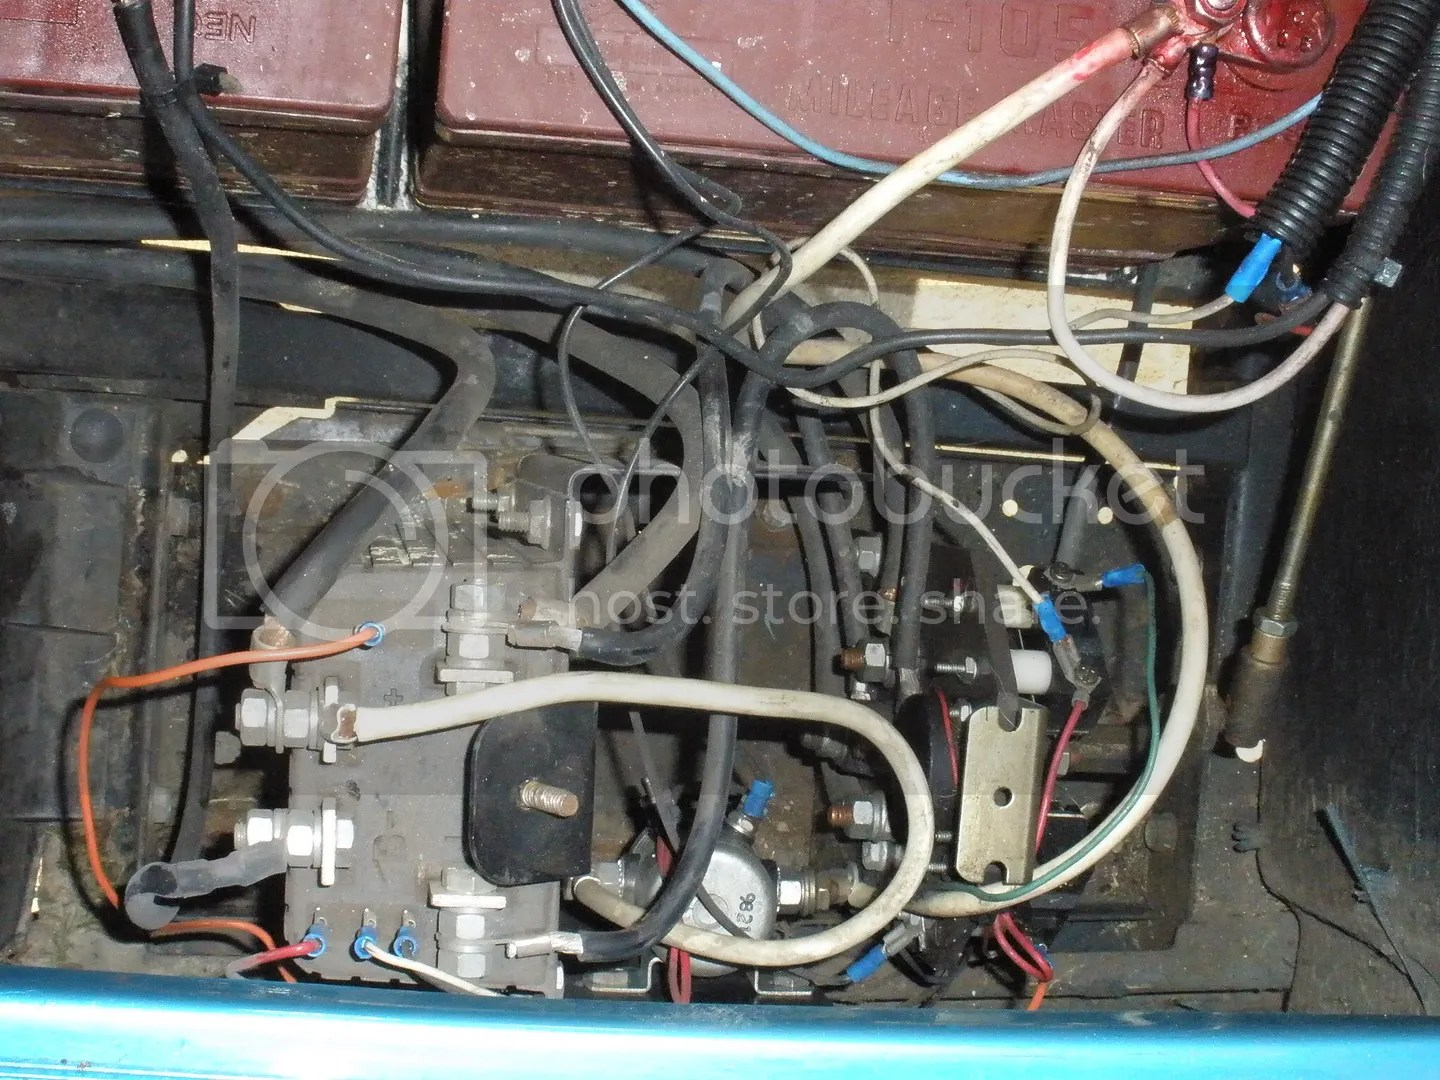 ez go electric golf cart troubleshooting 2002 bmw 325i radio wiring diagram where is solenoid on 99